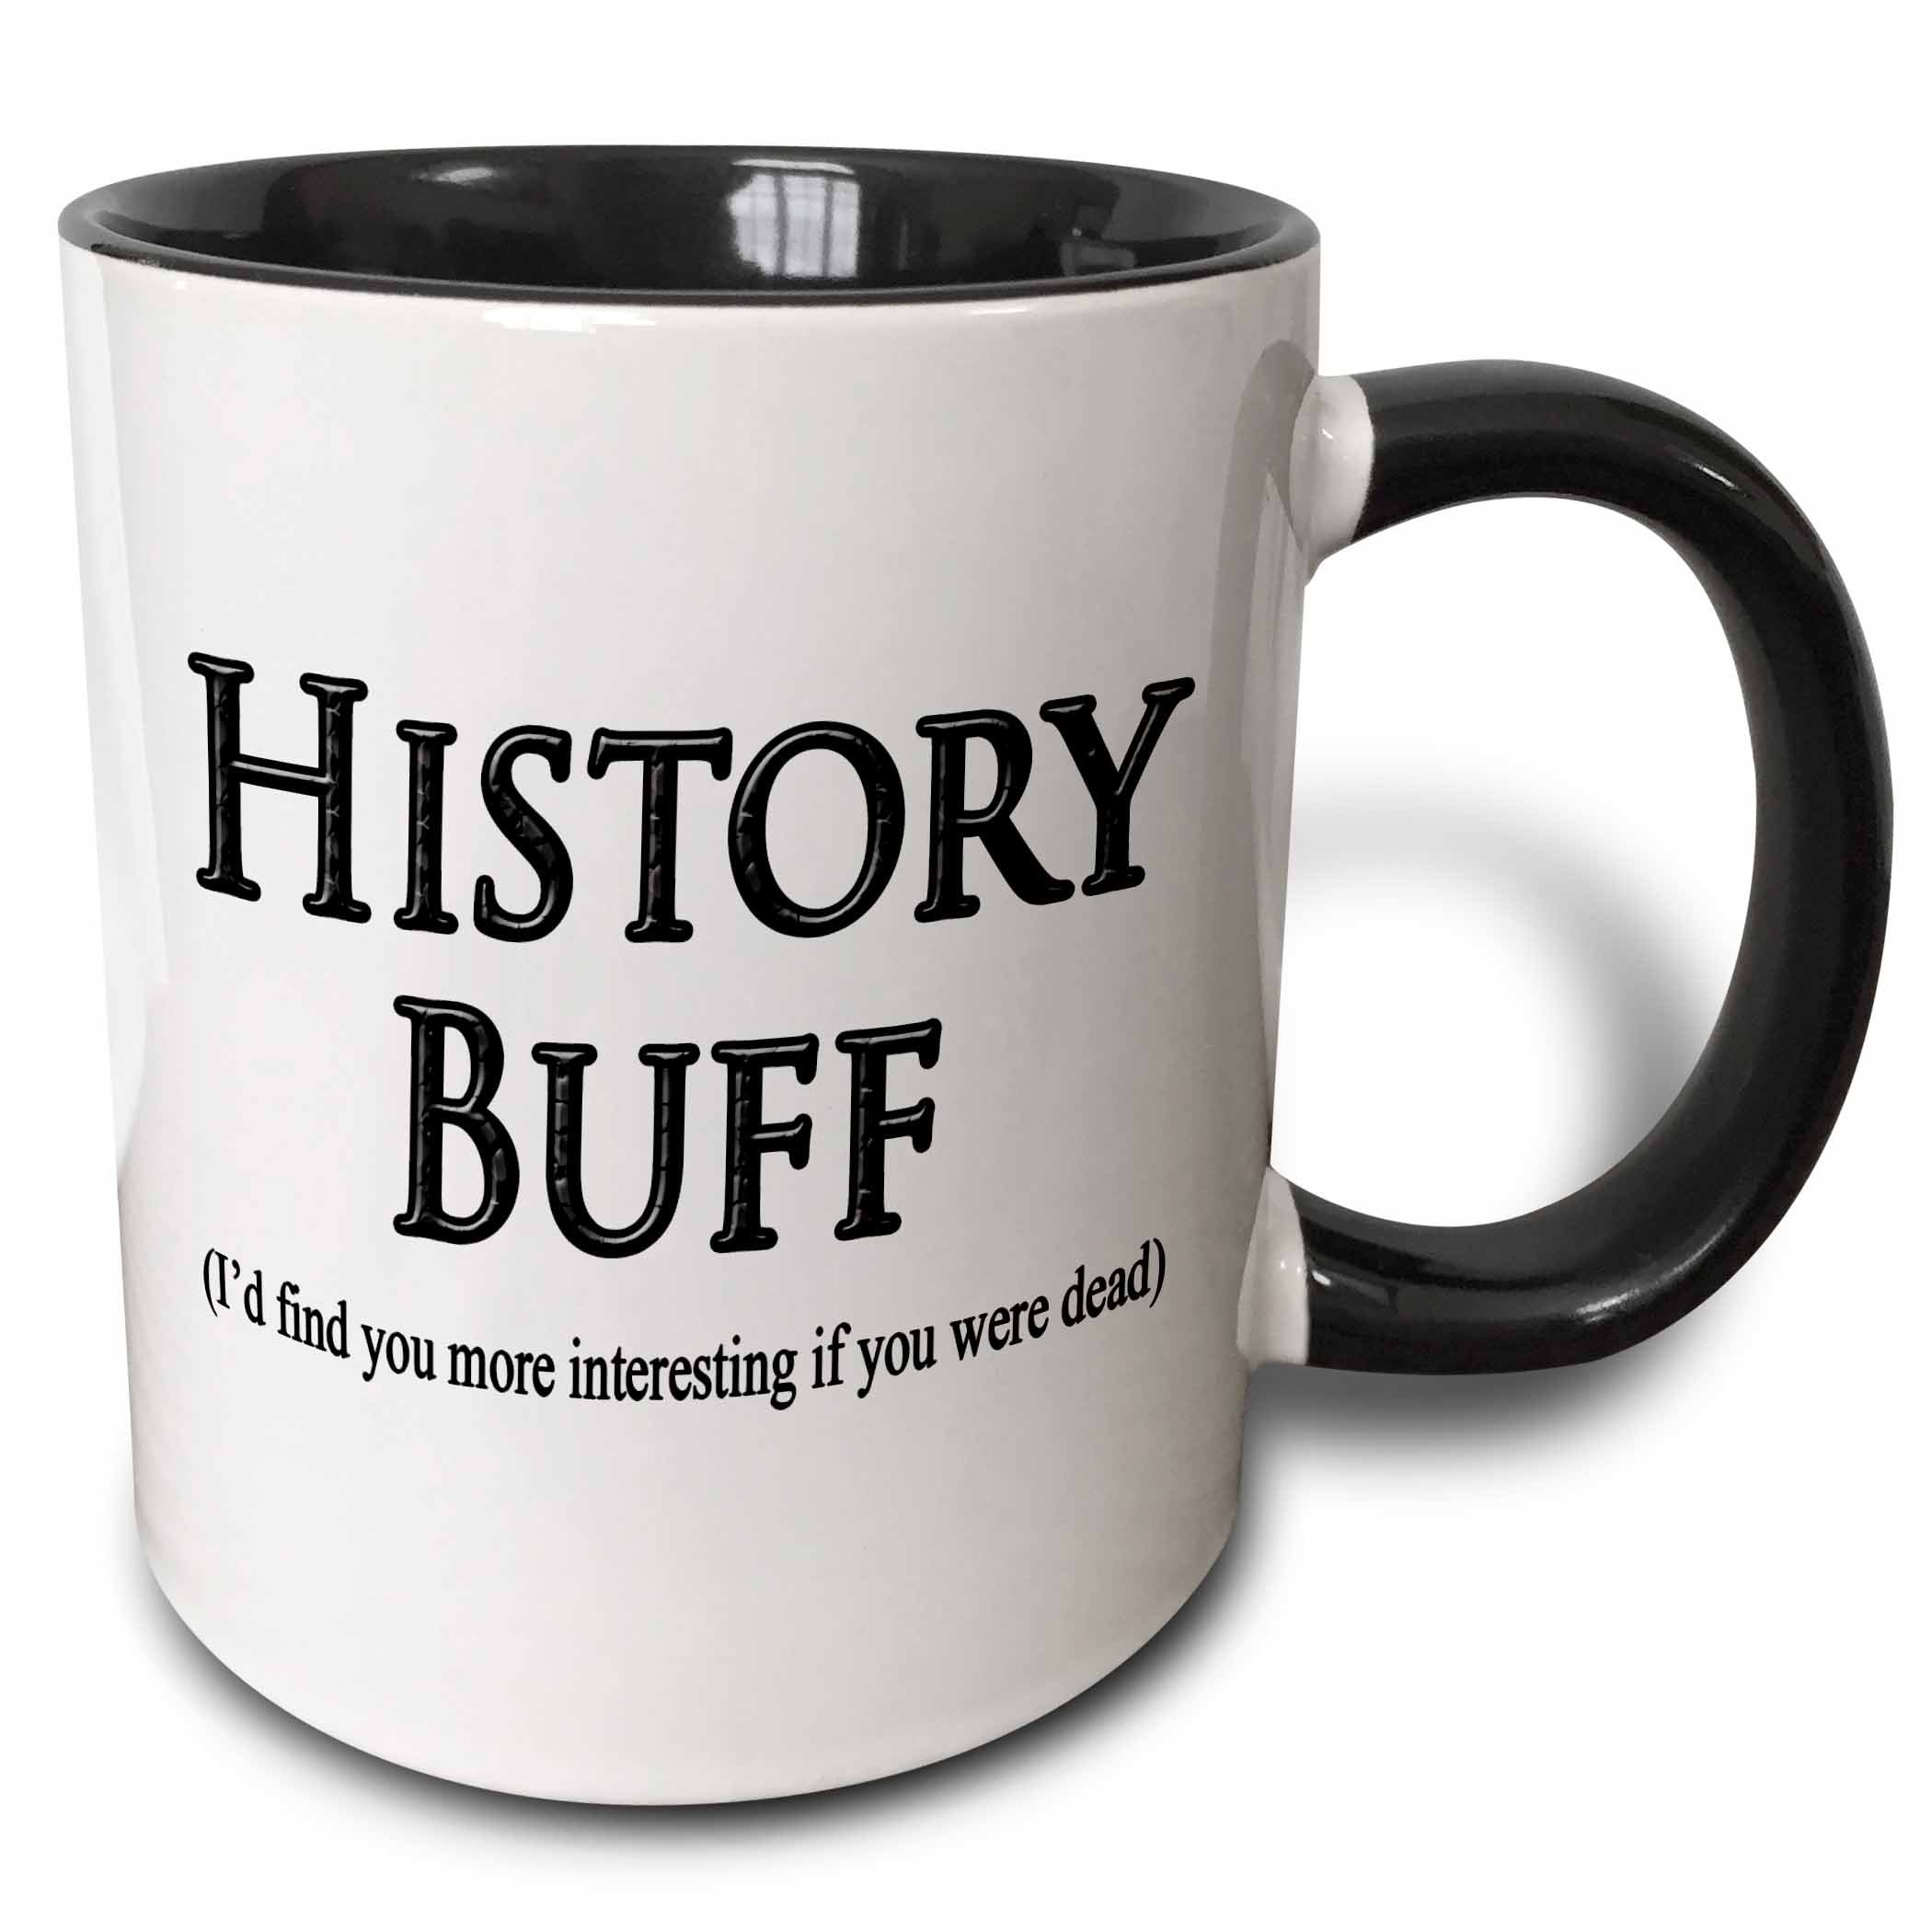 3dRose History Buff Id Find You More Interesting If You Were Dead Two Tone Mug, 11 oz, Black